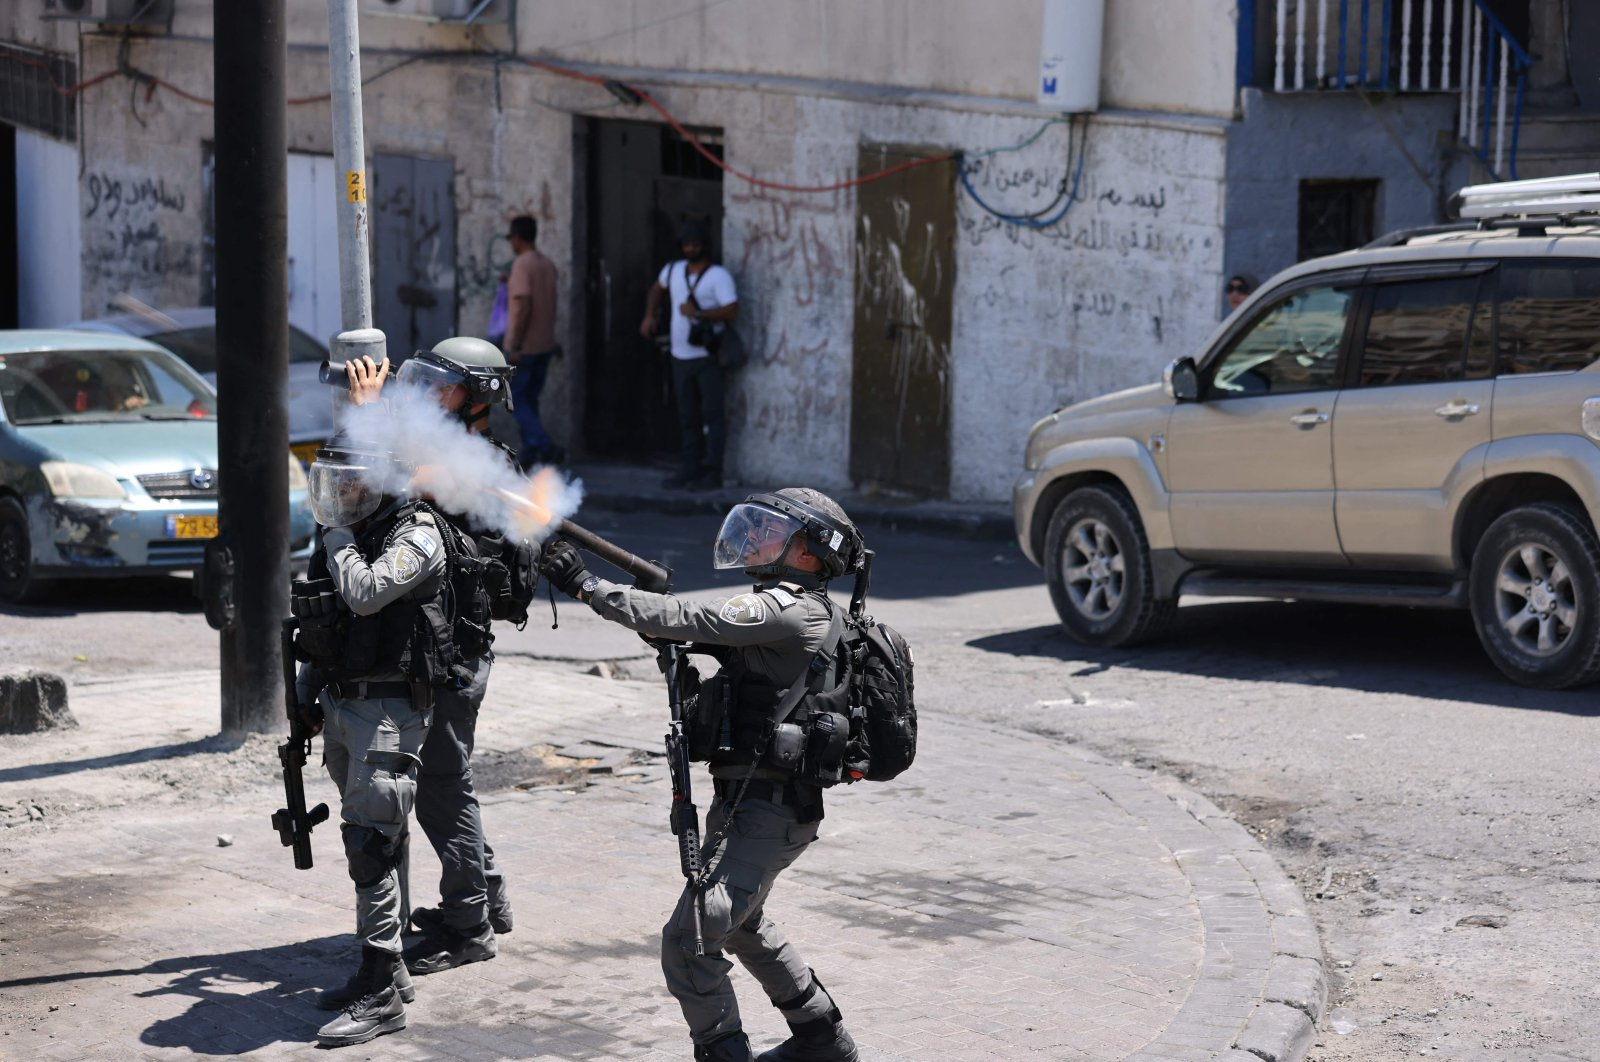 Israeli security forces disperse Palestinians during clashes following Friday prayers, in Silwan, East Jerusalem, on July 2, 2021. (AFP Photo)